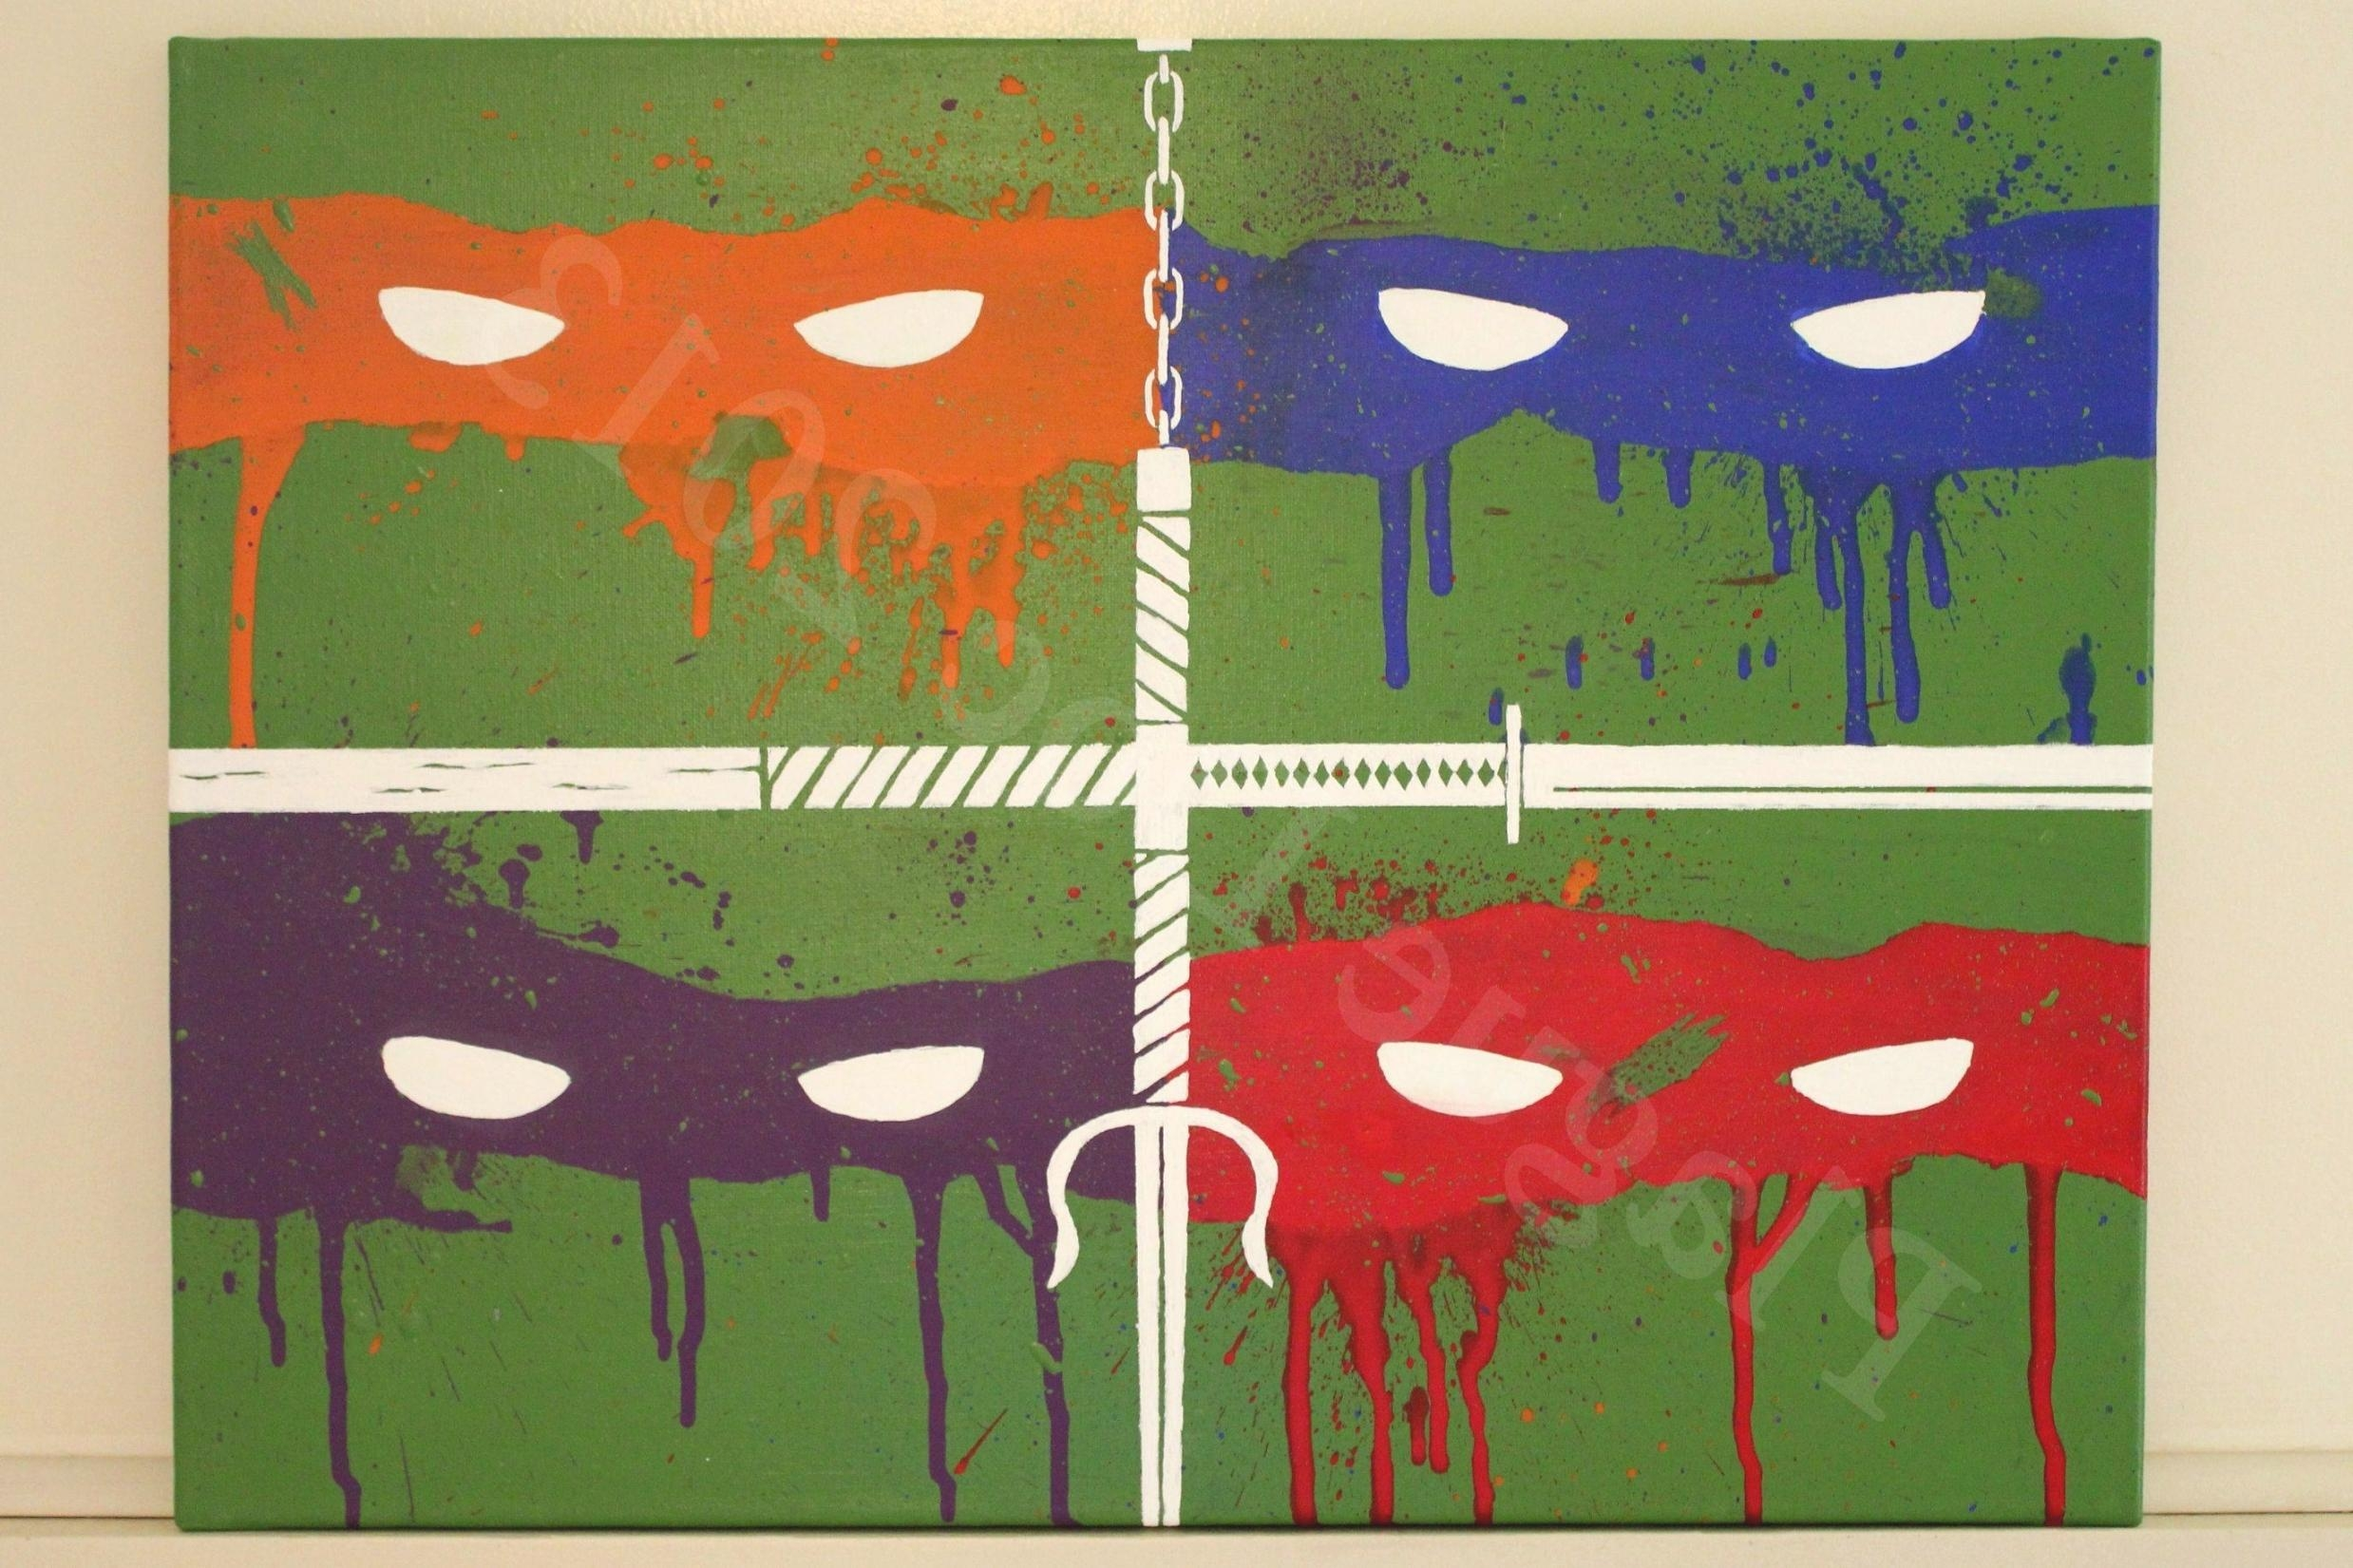 Elegant Tmnt Wall Art 71 For Eric Carle Wall Art With Tmnt Wall Regarding Eric Carle Wall Art (Image 6 of 20)